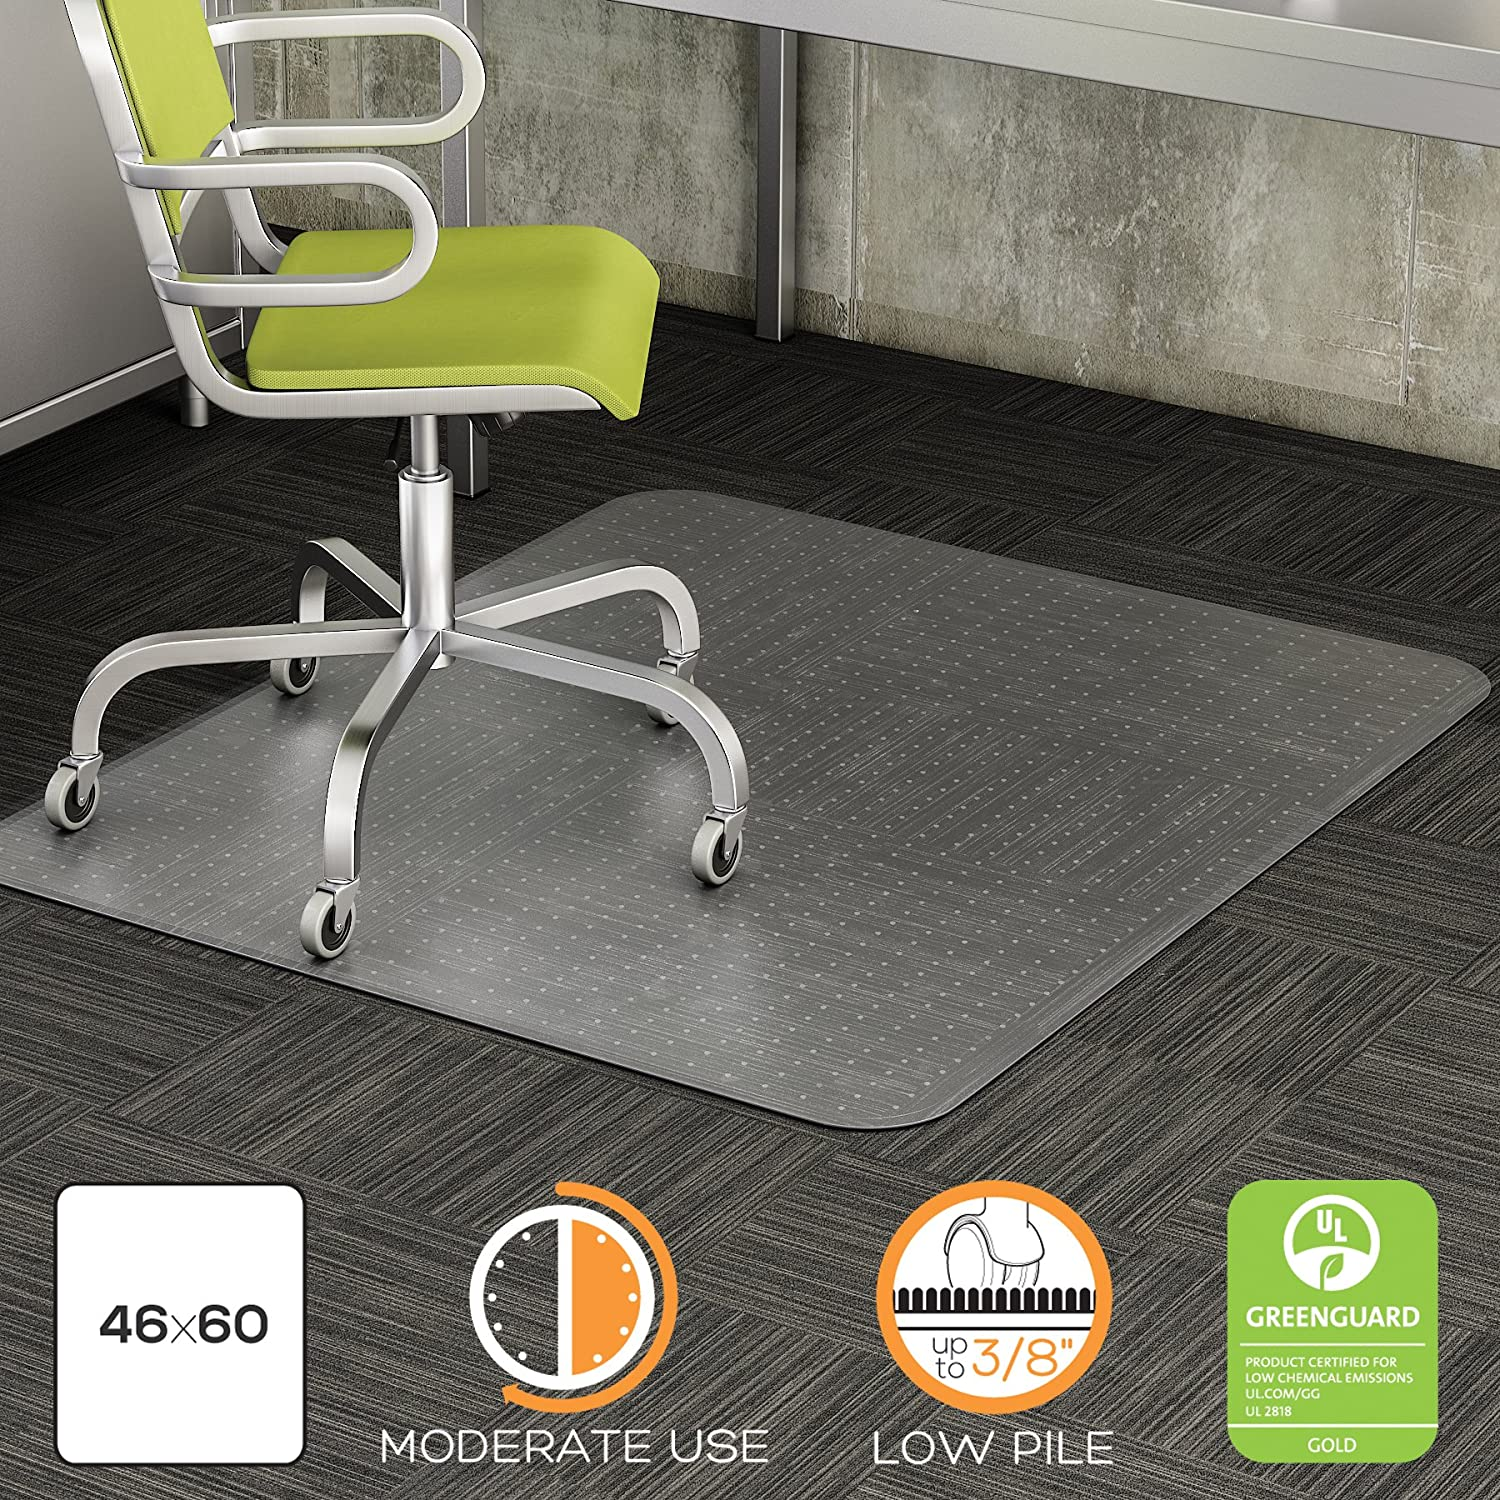 mat floor pile mats chairs hardwood desk chair protector permalink l rug plastic high image